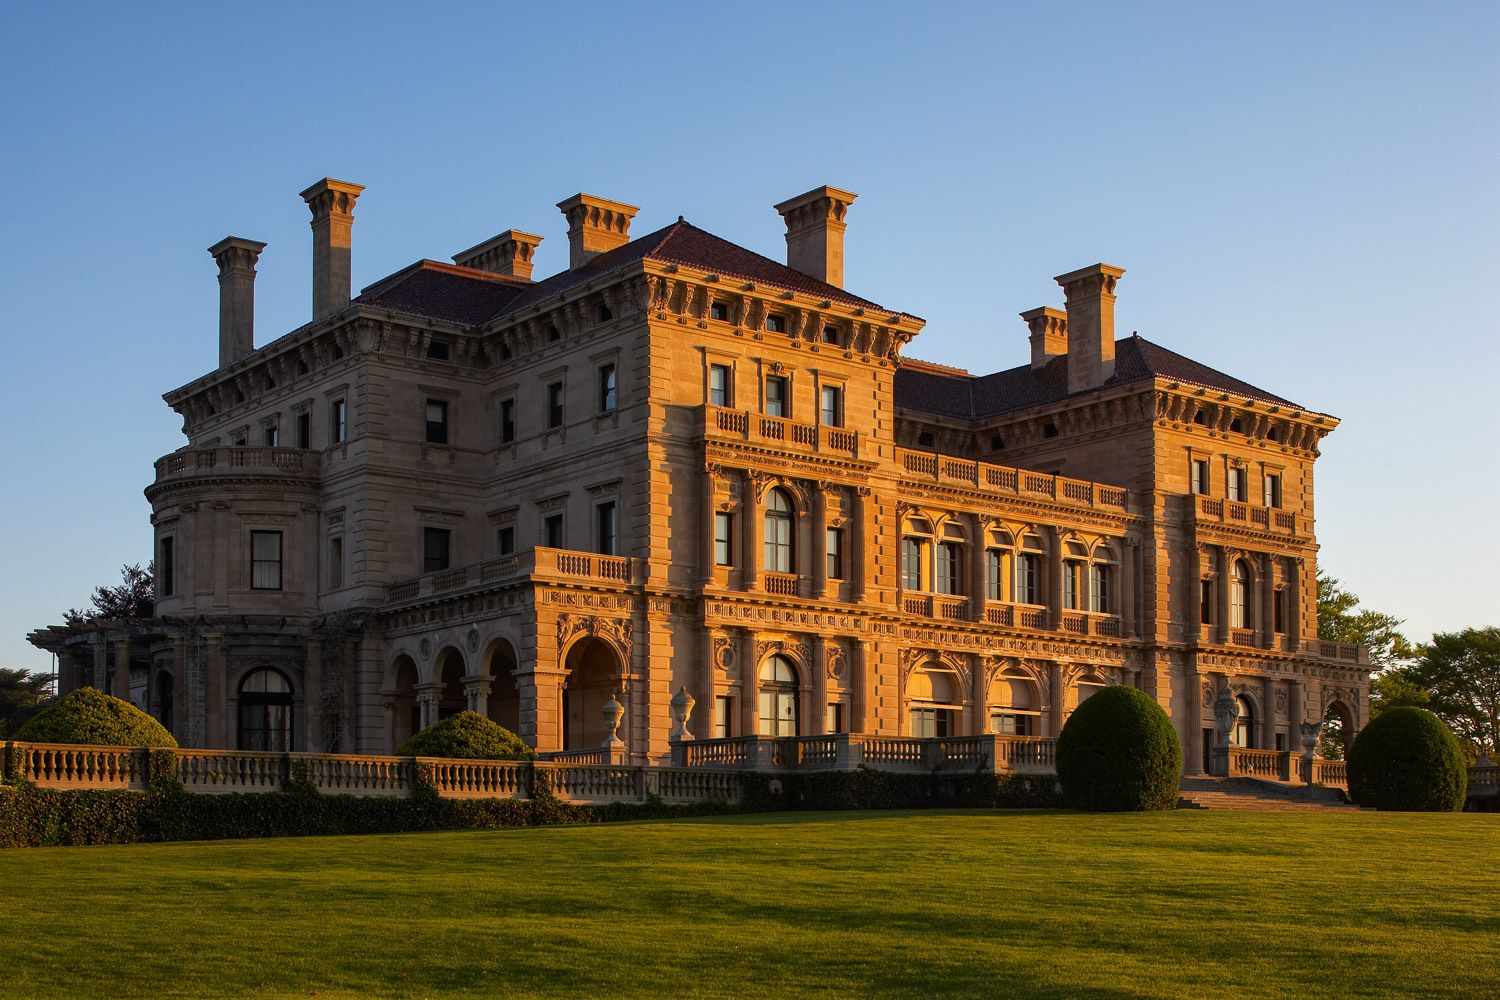 The Breakers, built by Cornelius Vanderbilt as a summer home